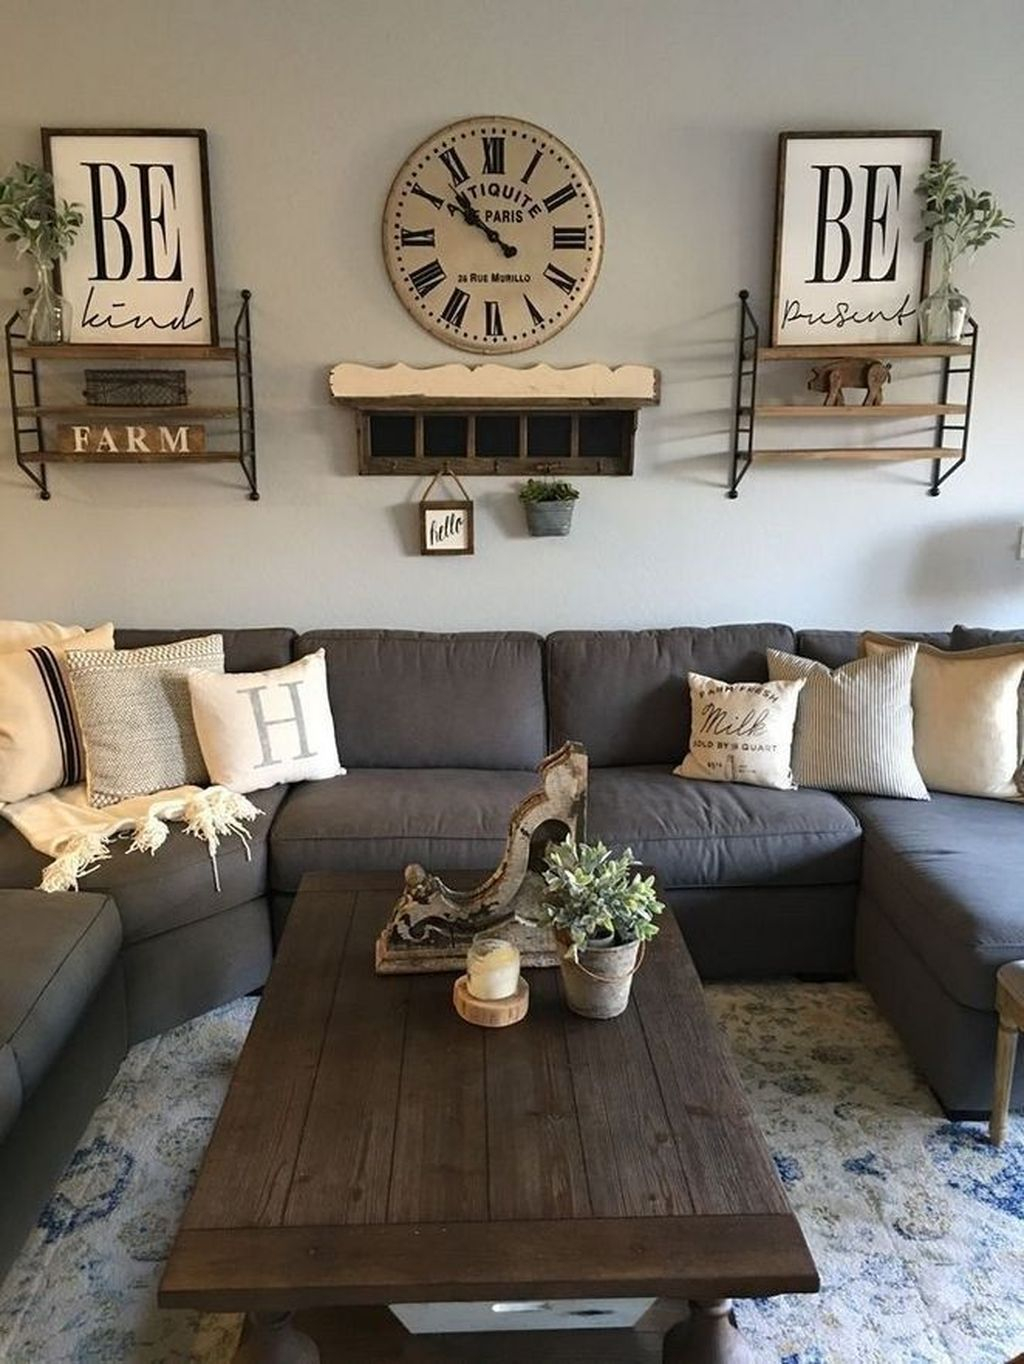 Stunning Apartment Living Room Decorating Ideas On A Budget 31